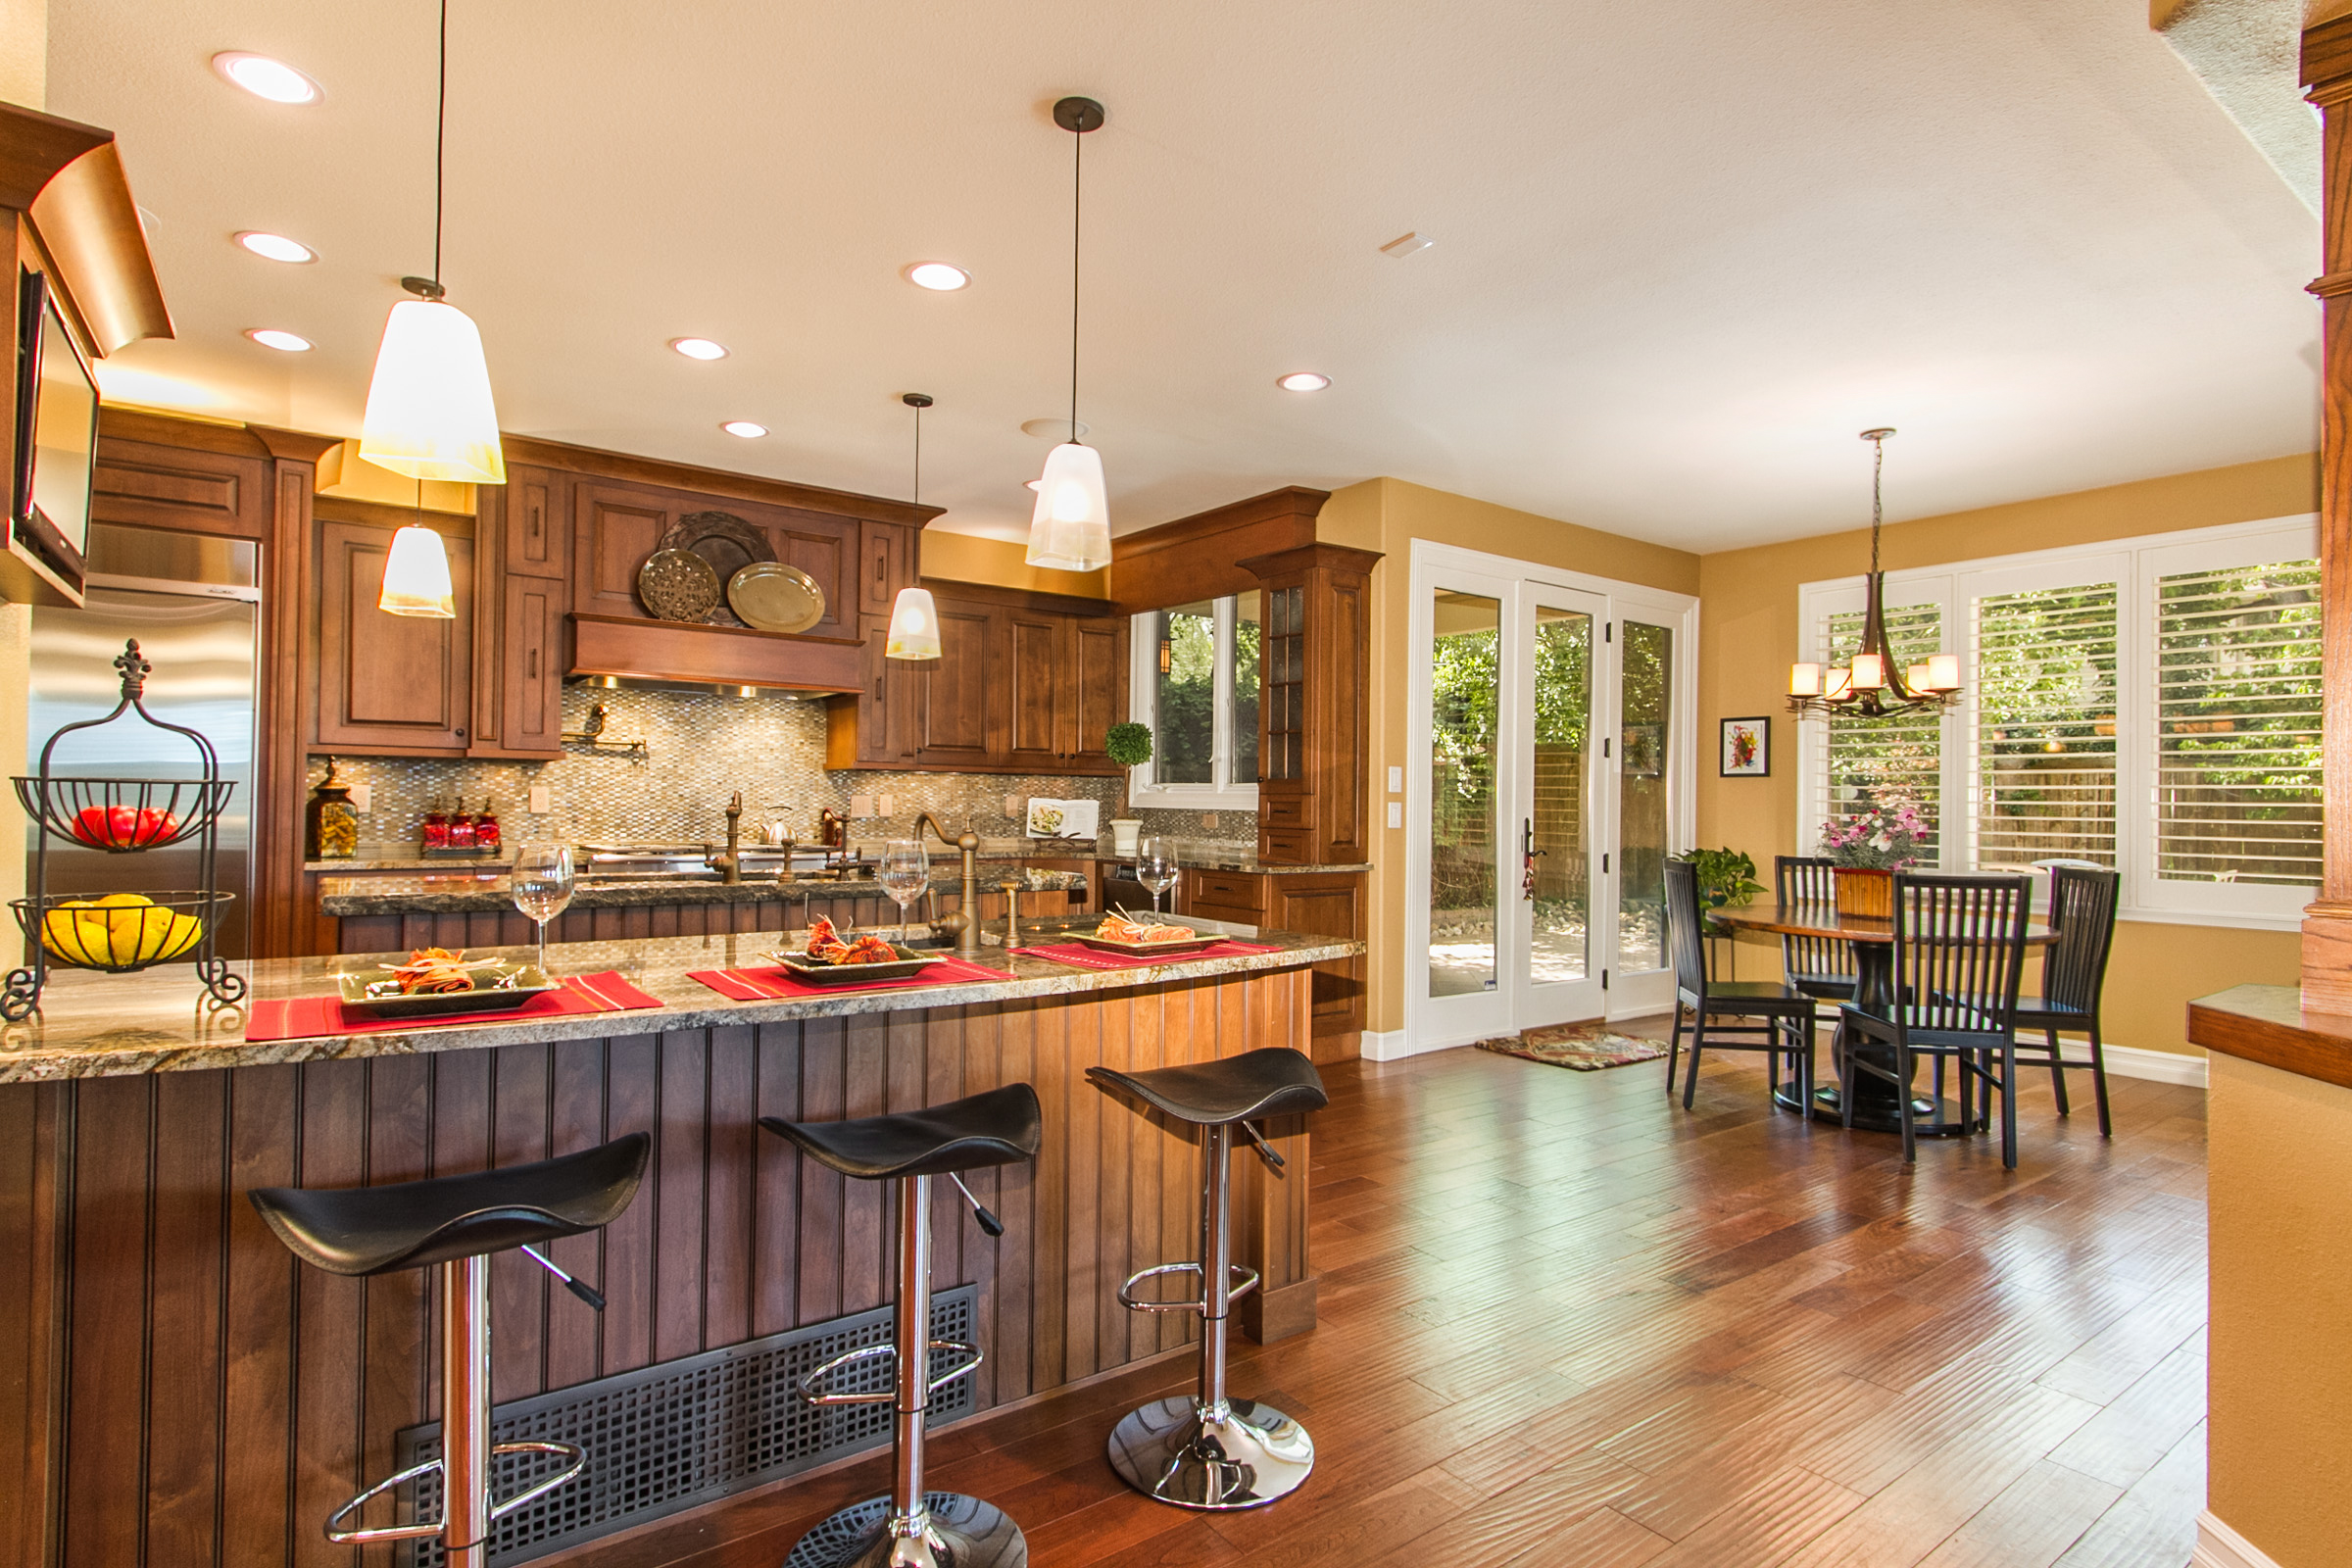 1368065_Kitchen-Adjoins-Breakfast-Room-and-Patio_high.jpg